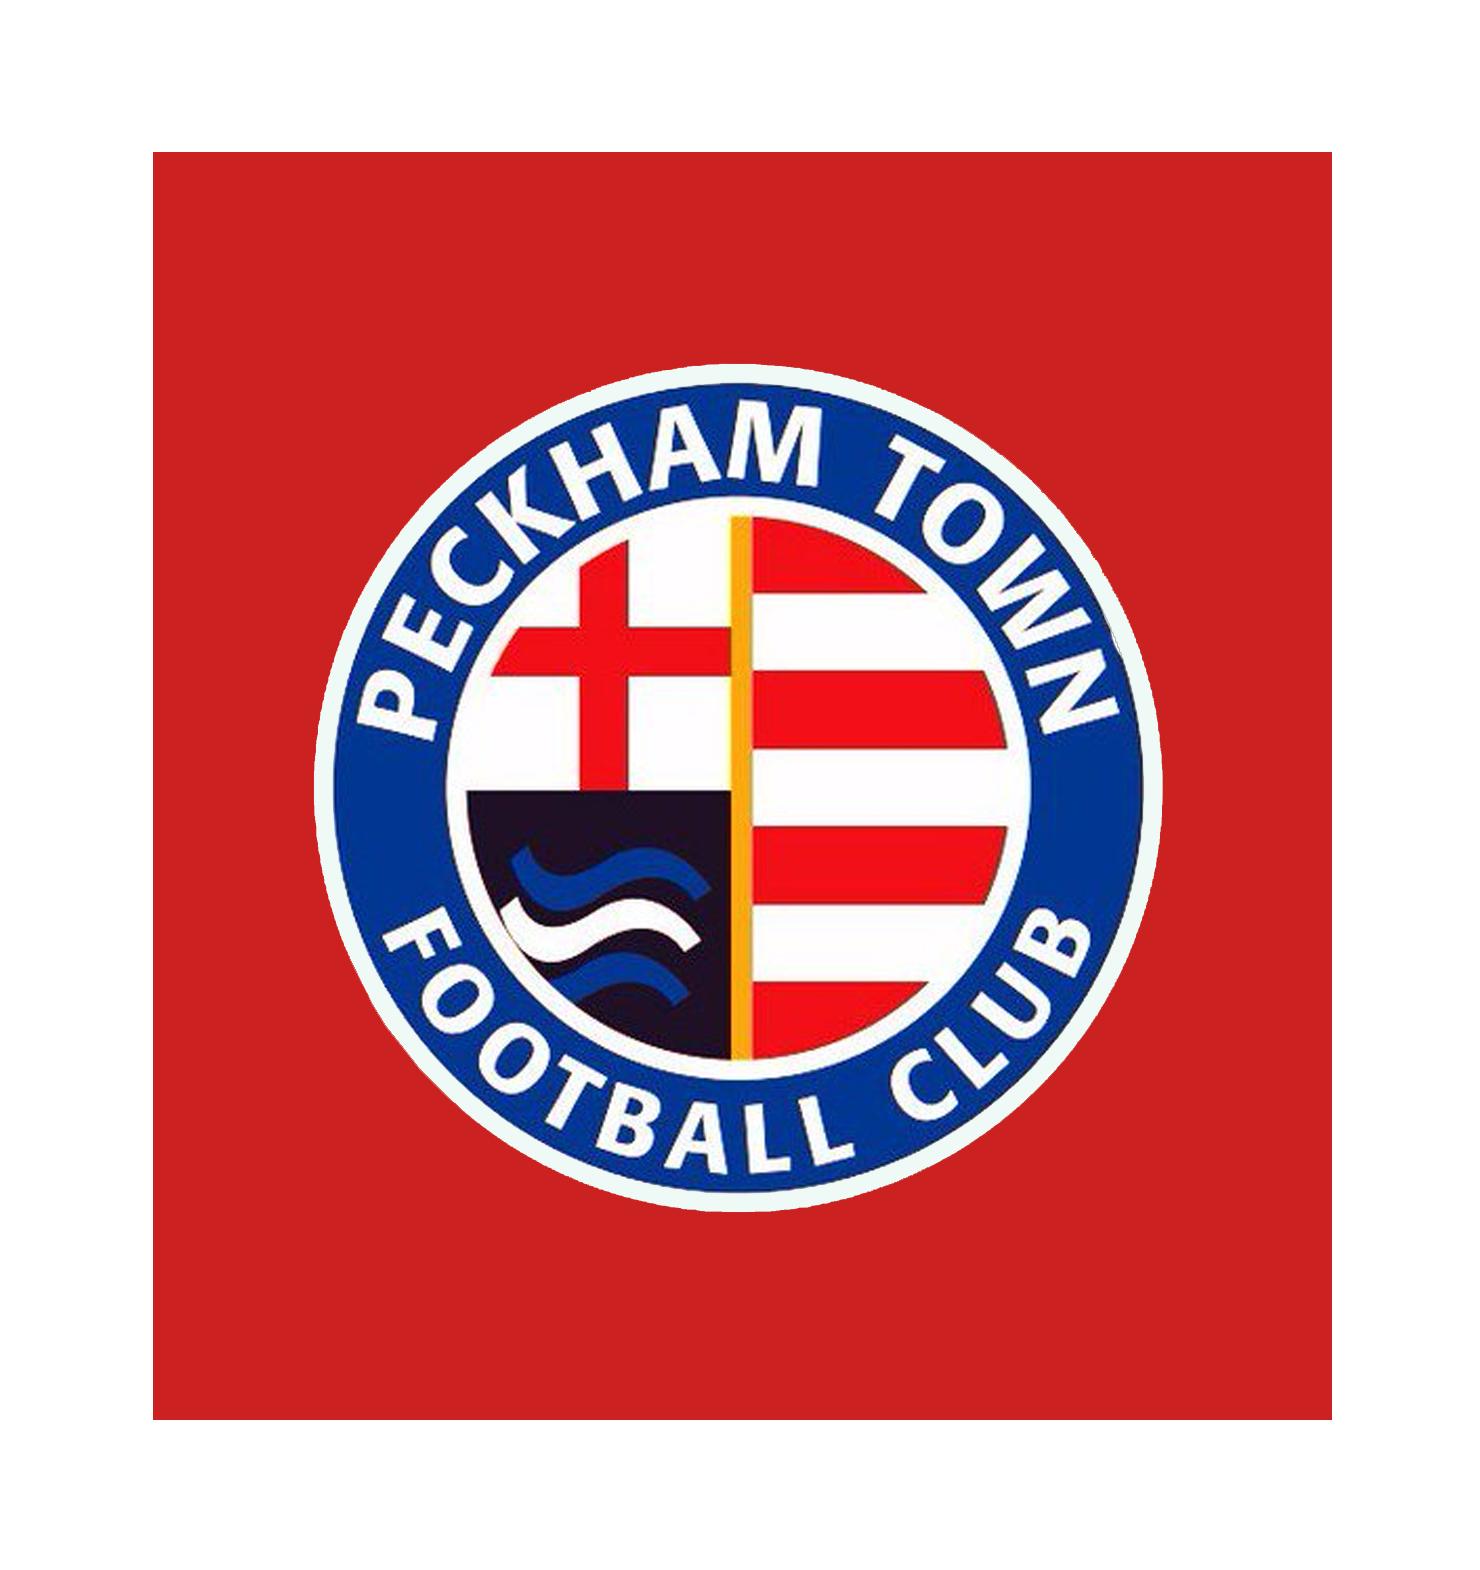 Peckham Town FC  Community club and events partner